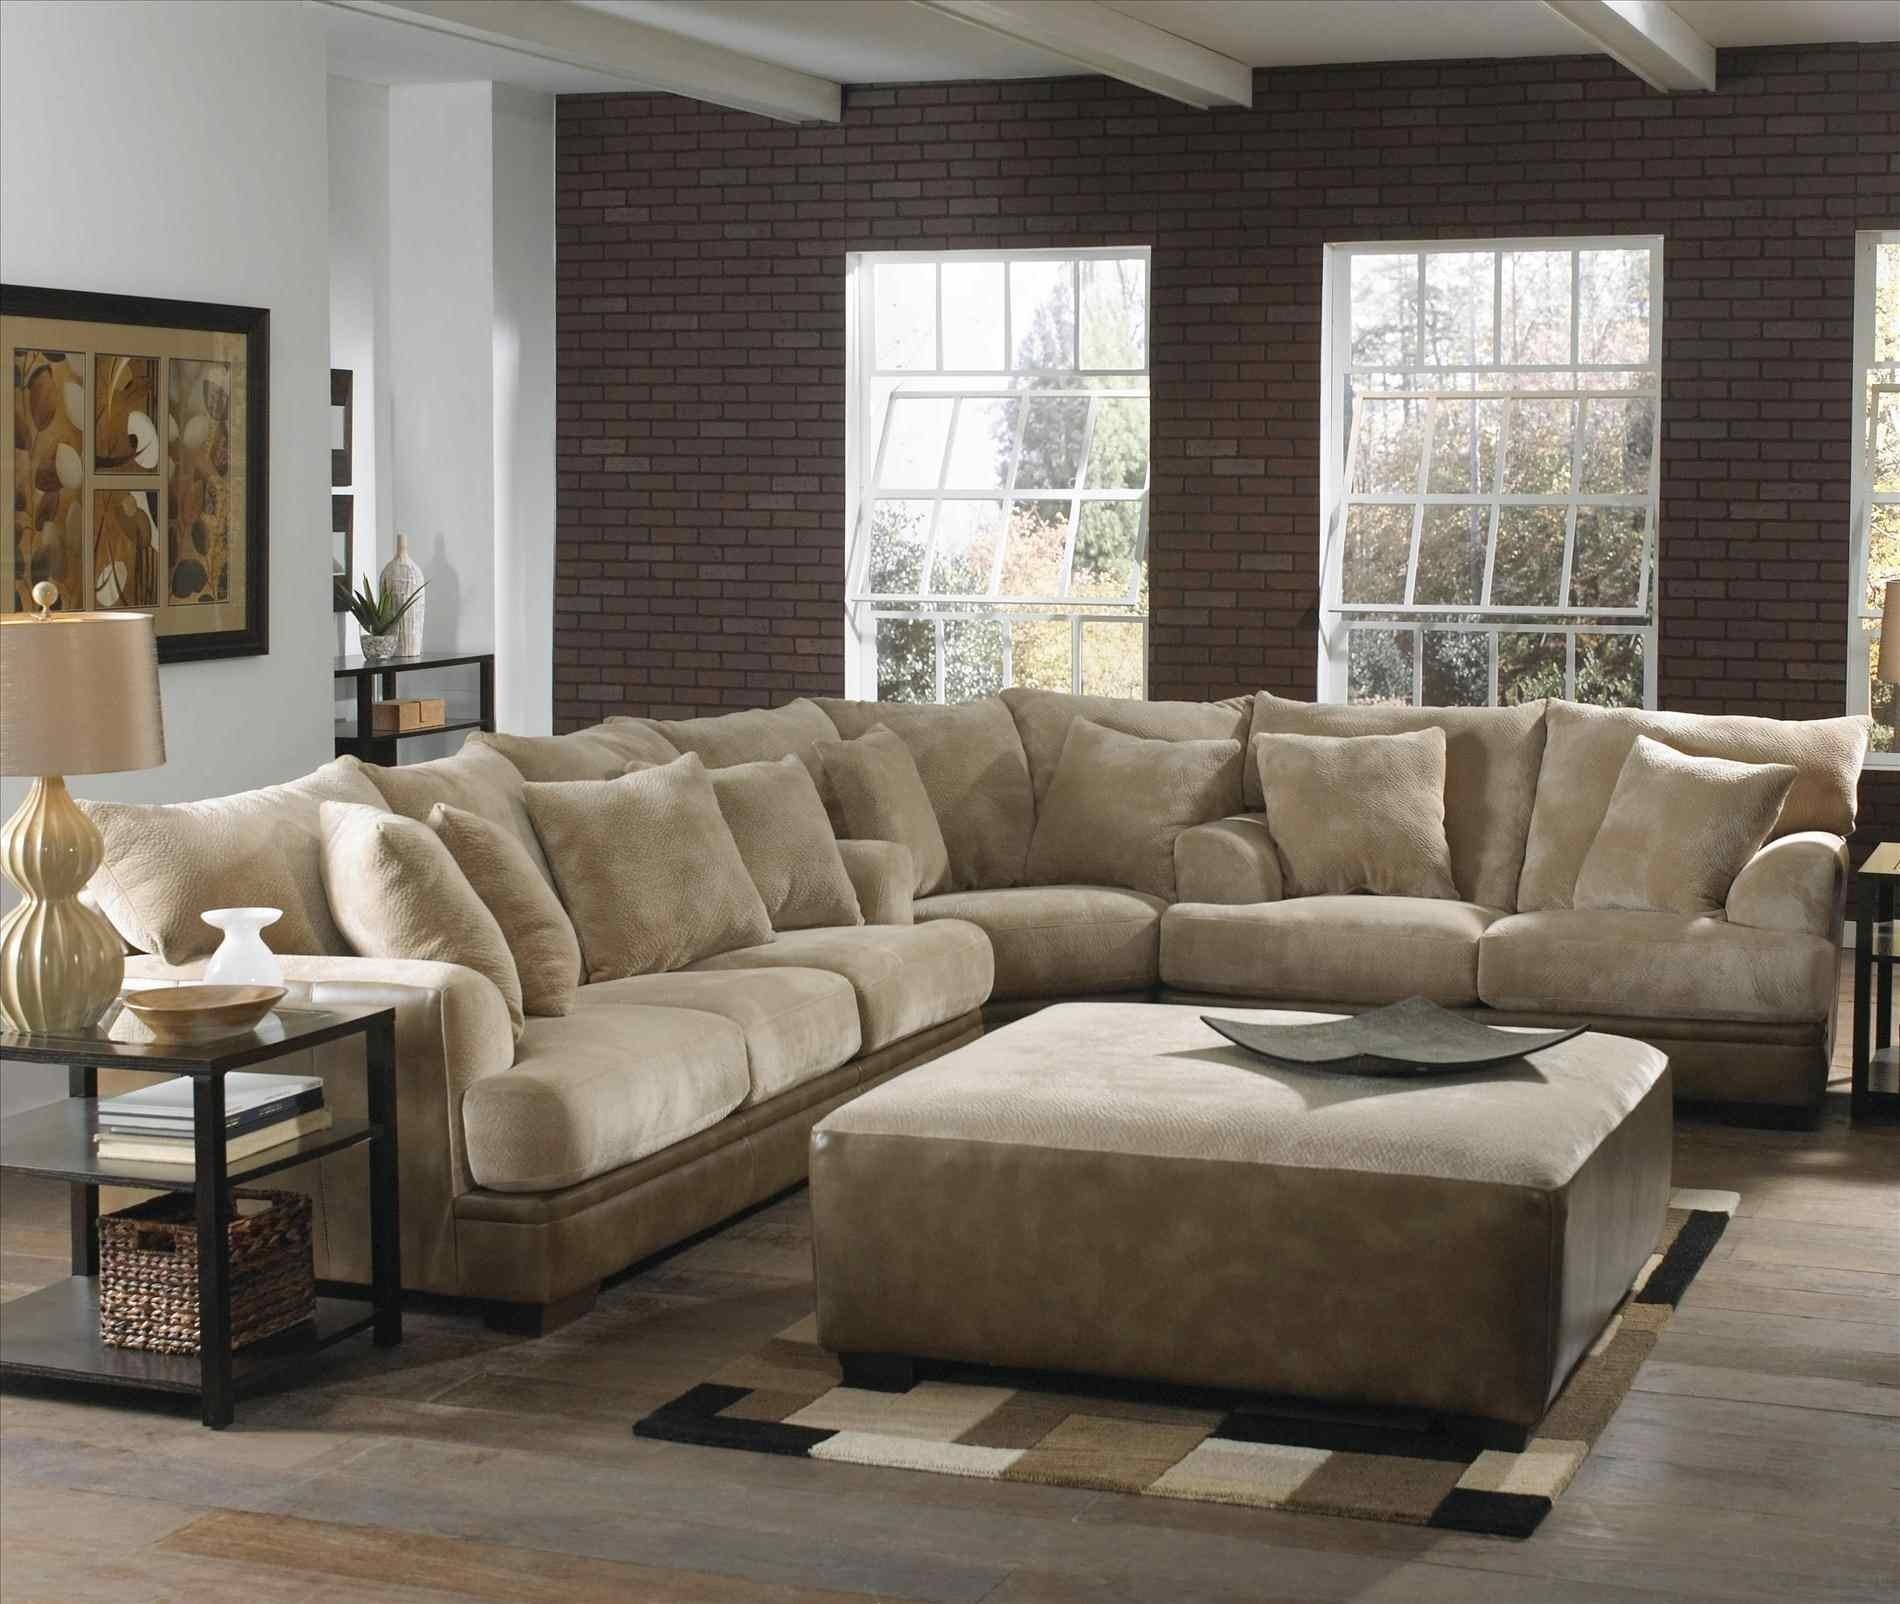 Sofa : Couch Fabuous Sectional Sofas L Shaped With Chaise Couch in The Brick Sectional Sofas (Image 9 of 10)